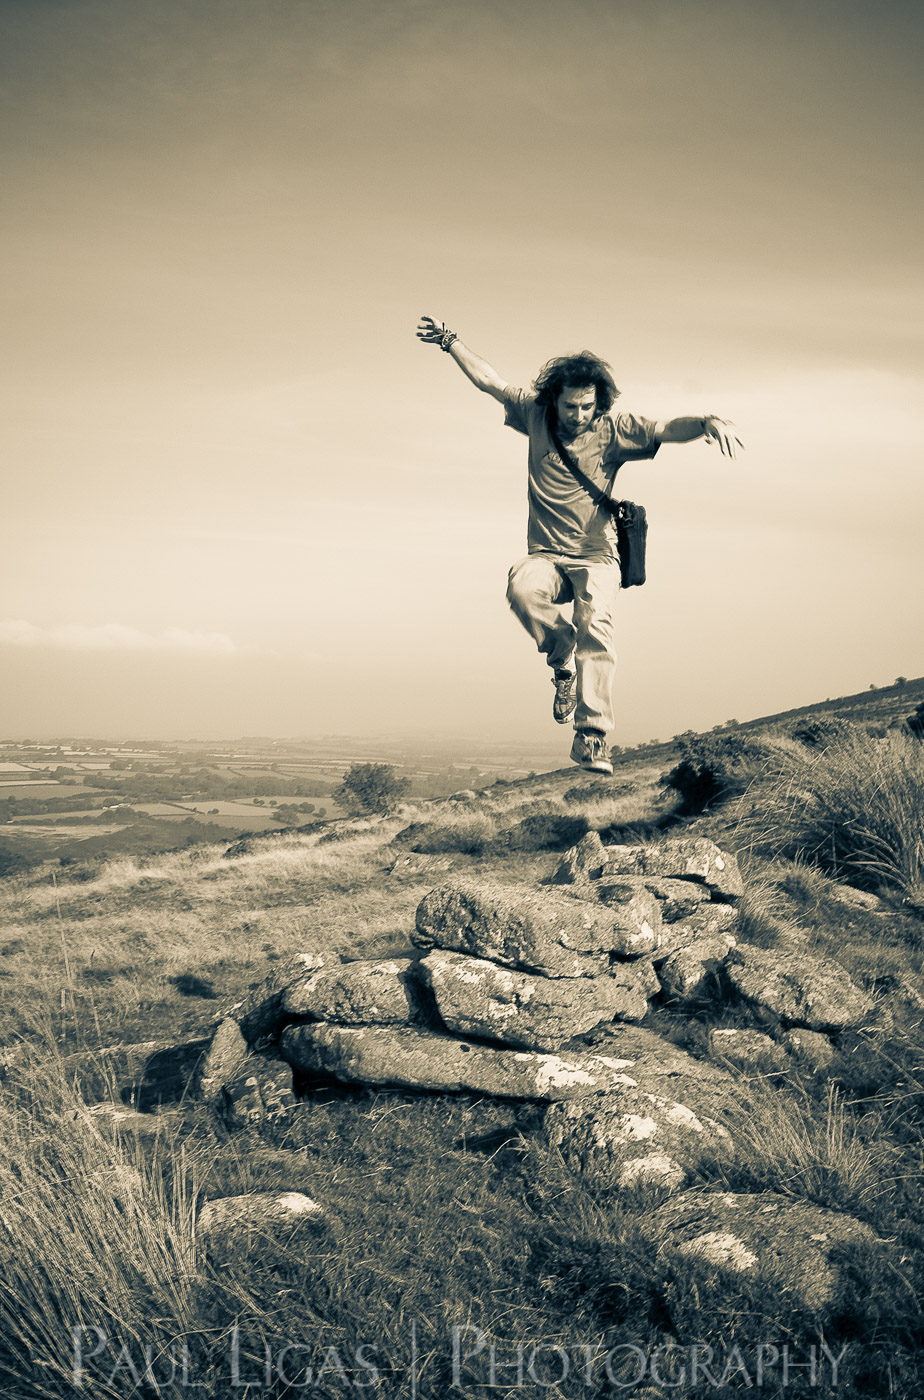 Lifestyle outdoor activity photographer herefordshire photography